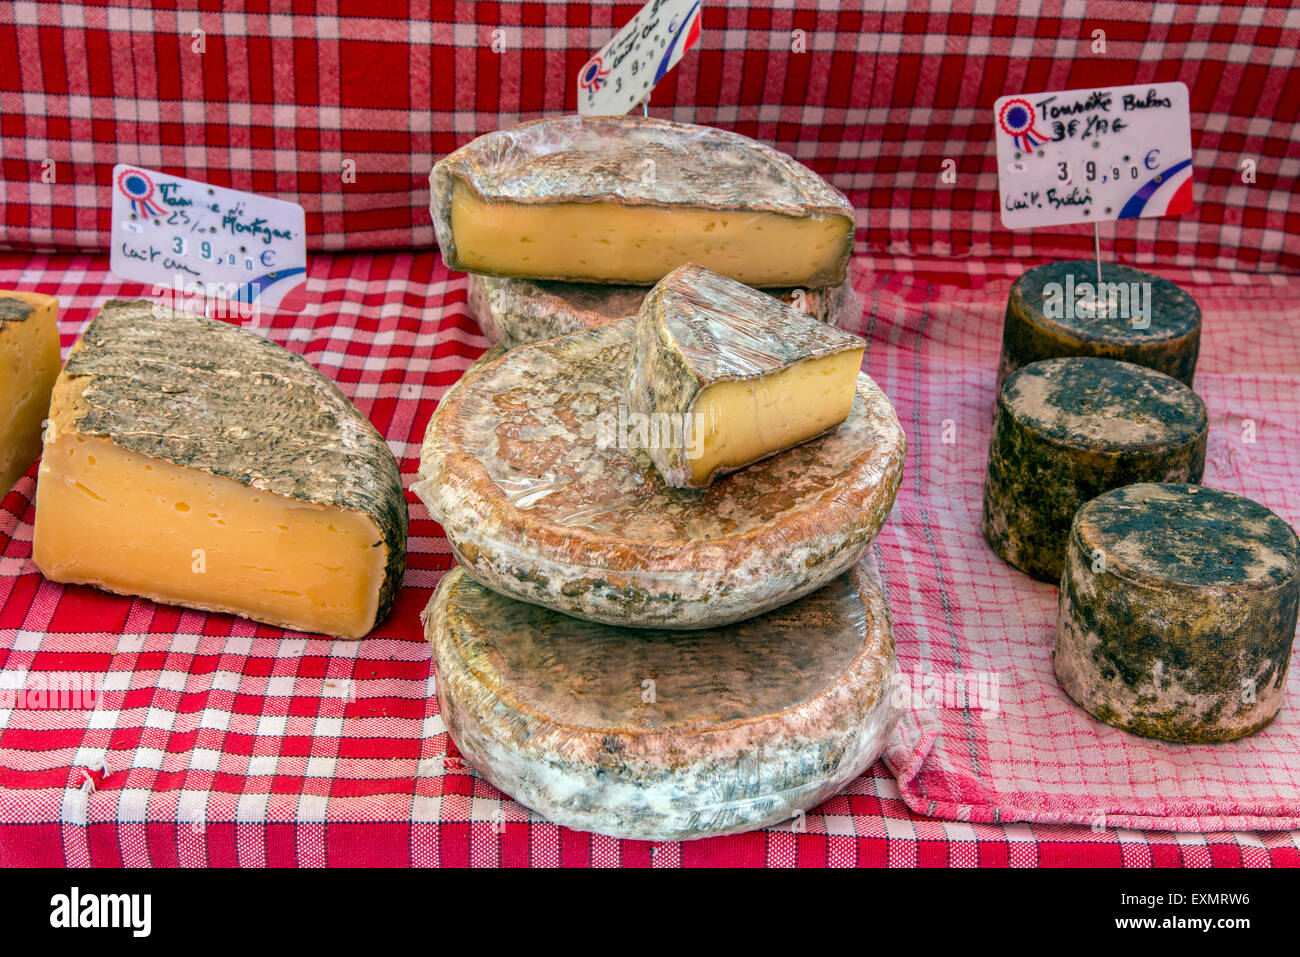 Les fromages en vente sur le marché, Carpentras, Provence, France Photo Stock